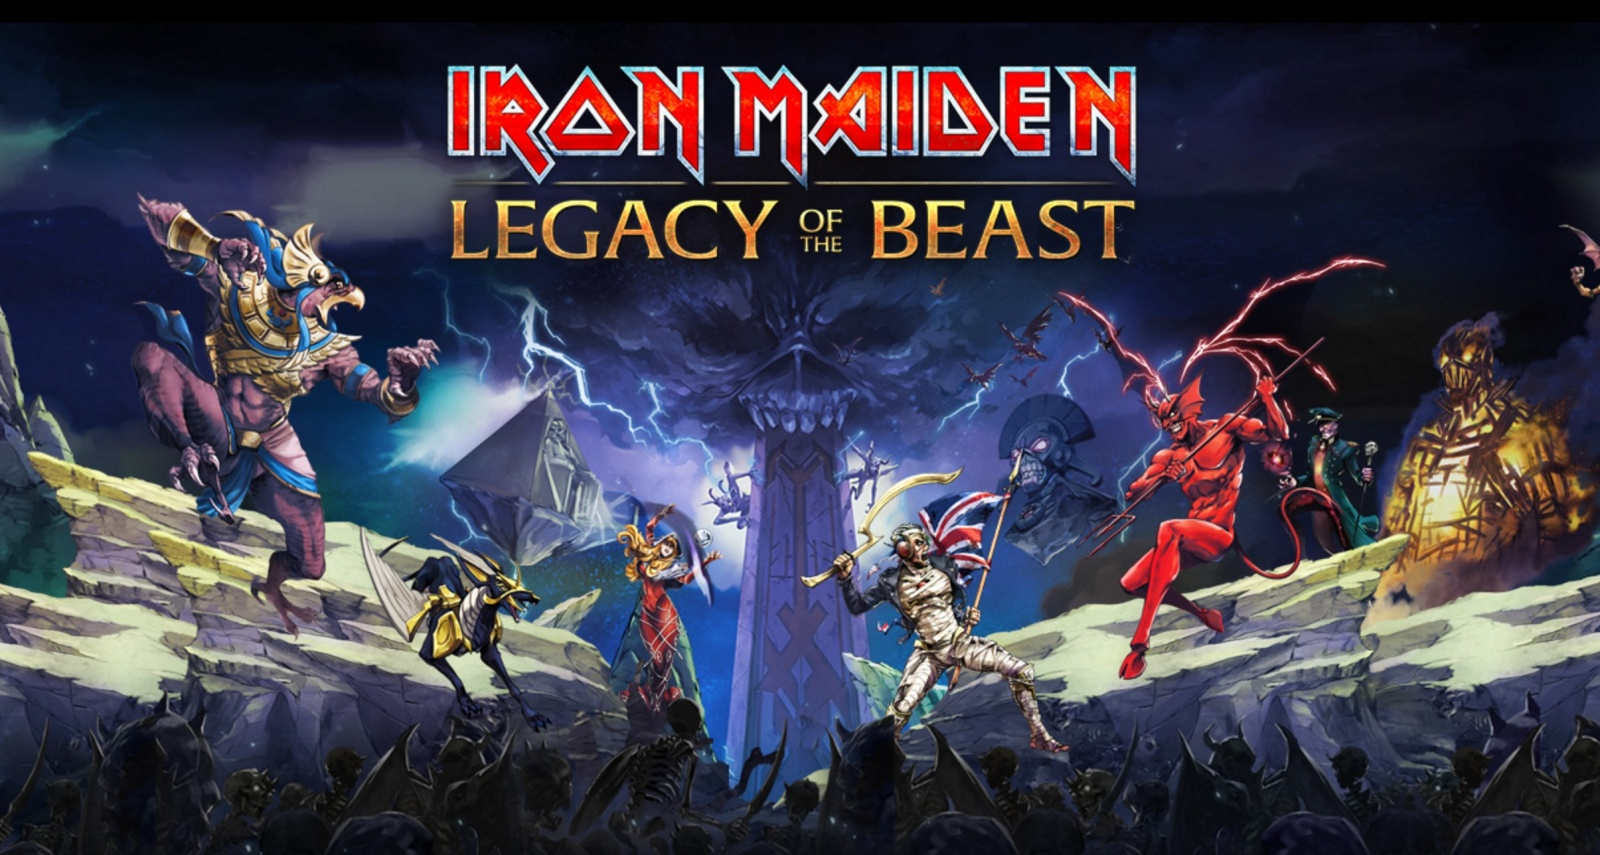 run-to-the-hills-in-upcoming-iron-maiden-mobile-game-image-cultofandroidcomwp-contentuploads201601Legacy-of-the-Beast-Iron-Maiden-jpg